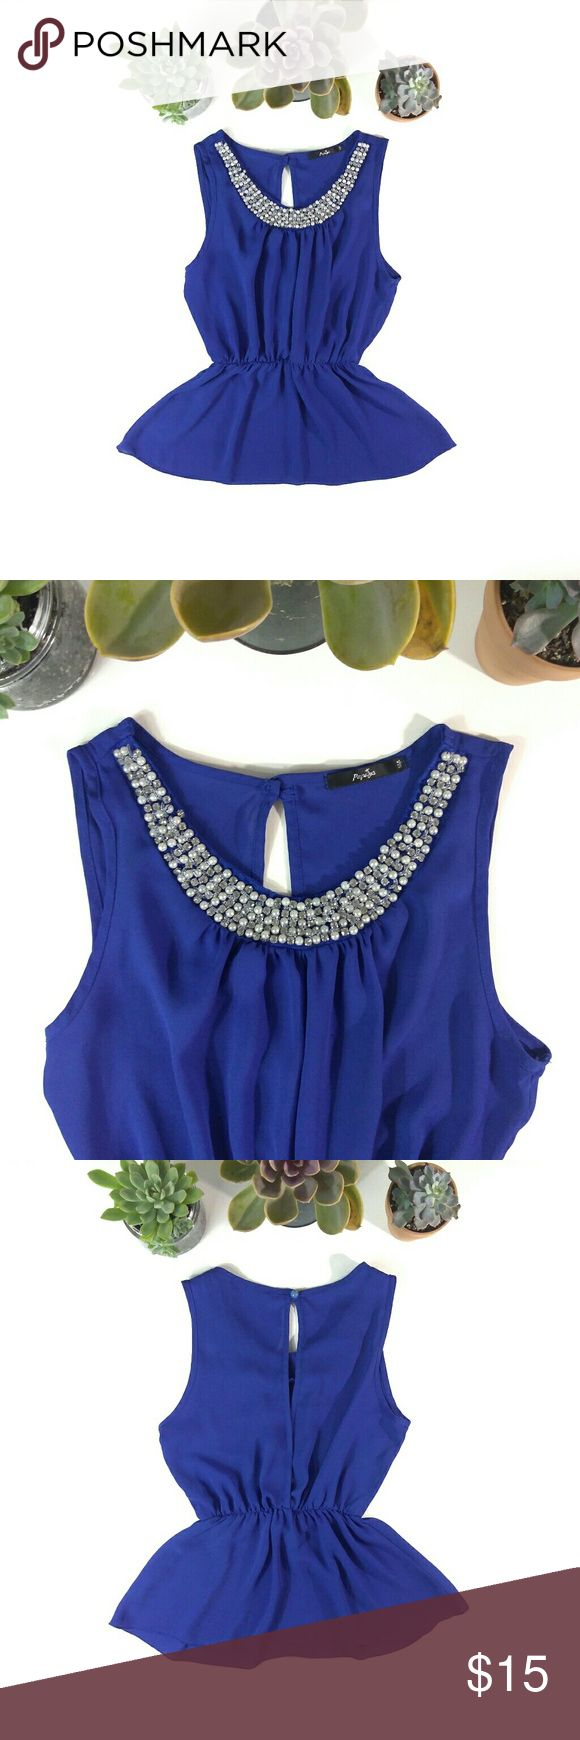 """EUC Papaya Cobalt Rhinestone & Pearl Peplum Top EUC. Worn twice.   Size S. 24"""" shoulder to hem, 14"""" pit to pit, 15"""" MAX at the stretchy waistline.   Cobalt blue Papaya peplum top. 100% polyester with that """"chiffon"""" feel. Very slightly sheer, so pair with a blue or nude bra/bralette or cami. Rhinestone, Pearl and beaded embellishment grace the scooped neckline, and the peepshow crossback has a single button and loop closure at the nape of the neck! Lovely little top that pairs well with just…"""